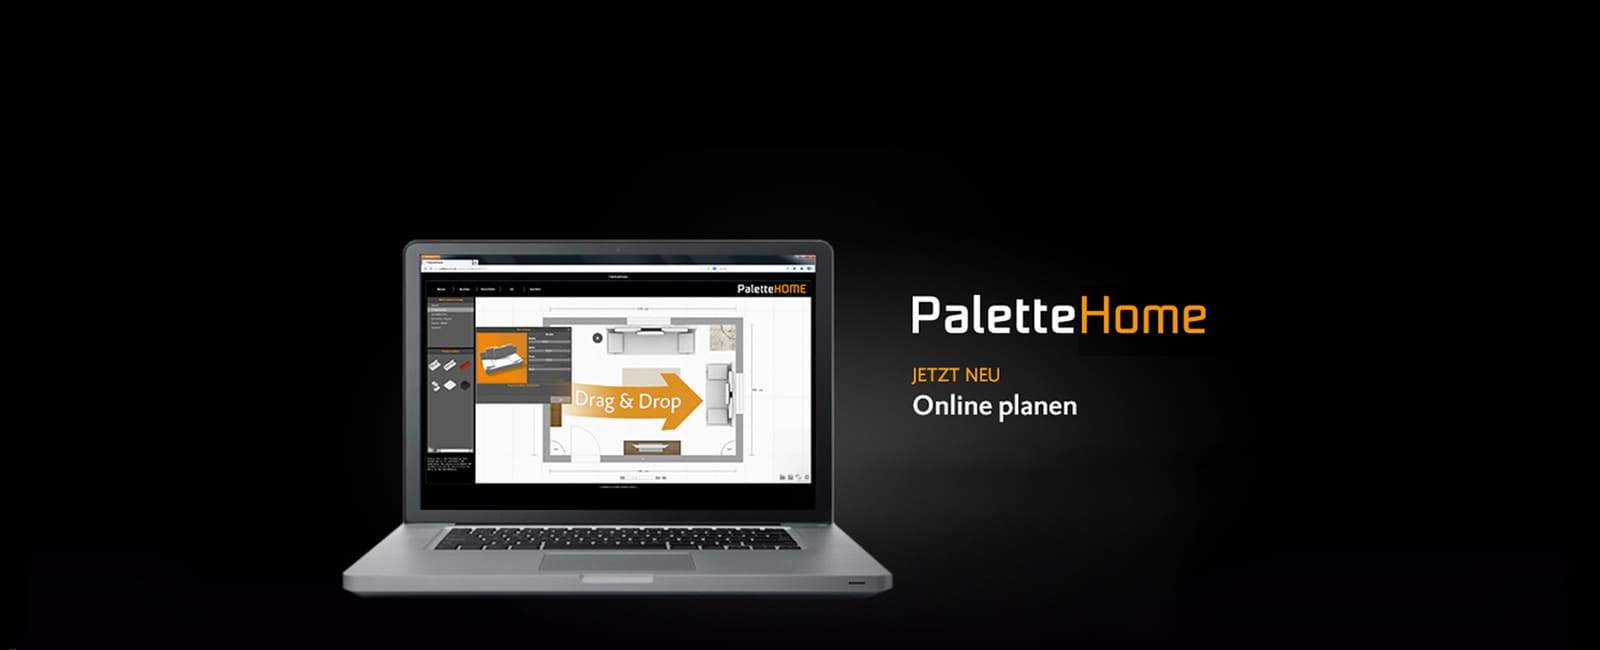 palettehome web01